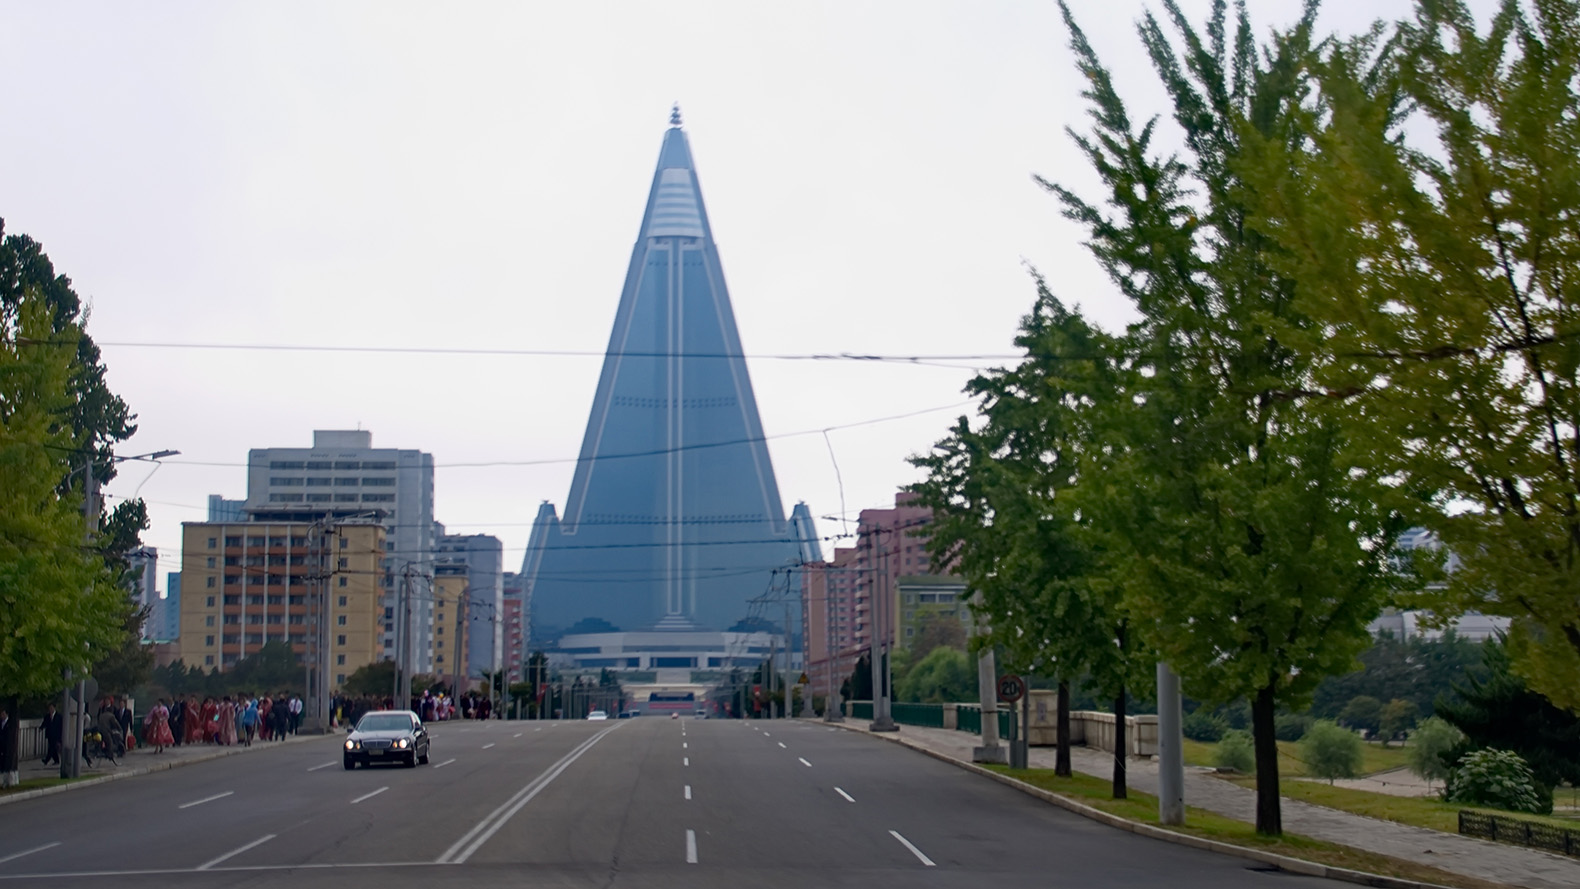 North korea s hotel of doom is the world s largest for Design hotel korea